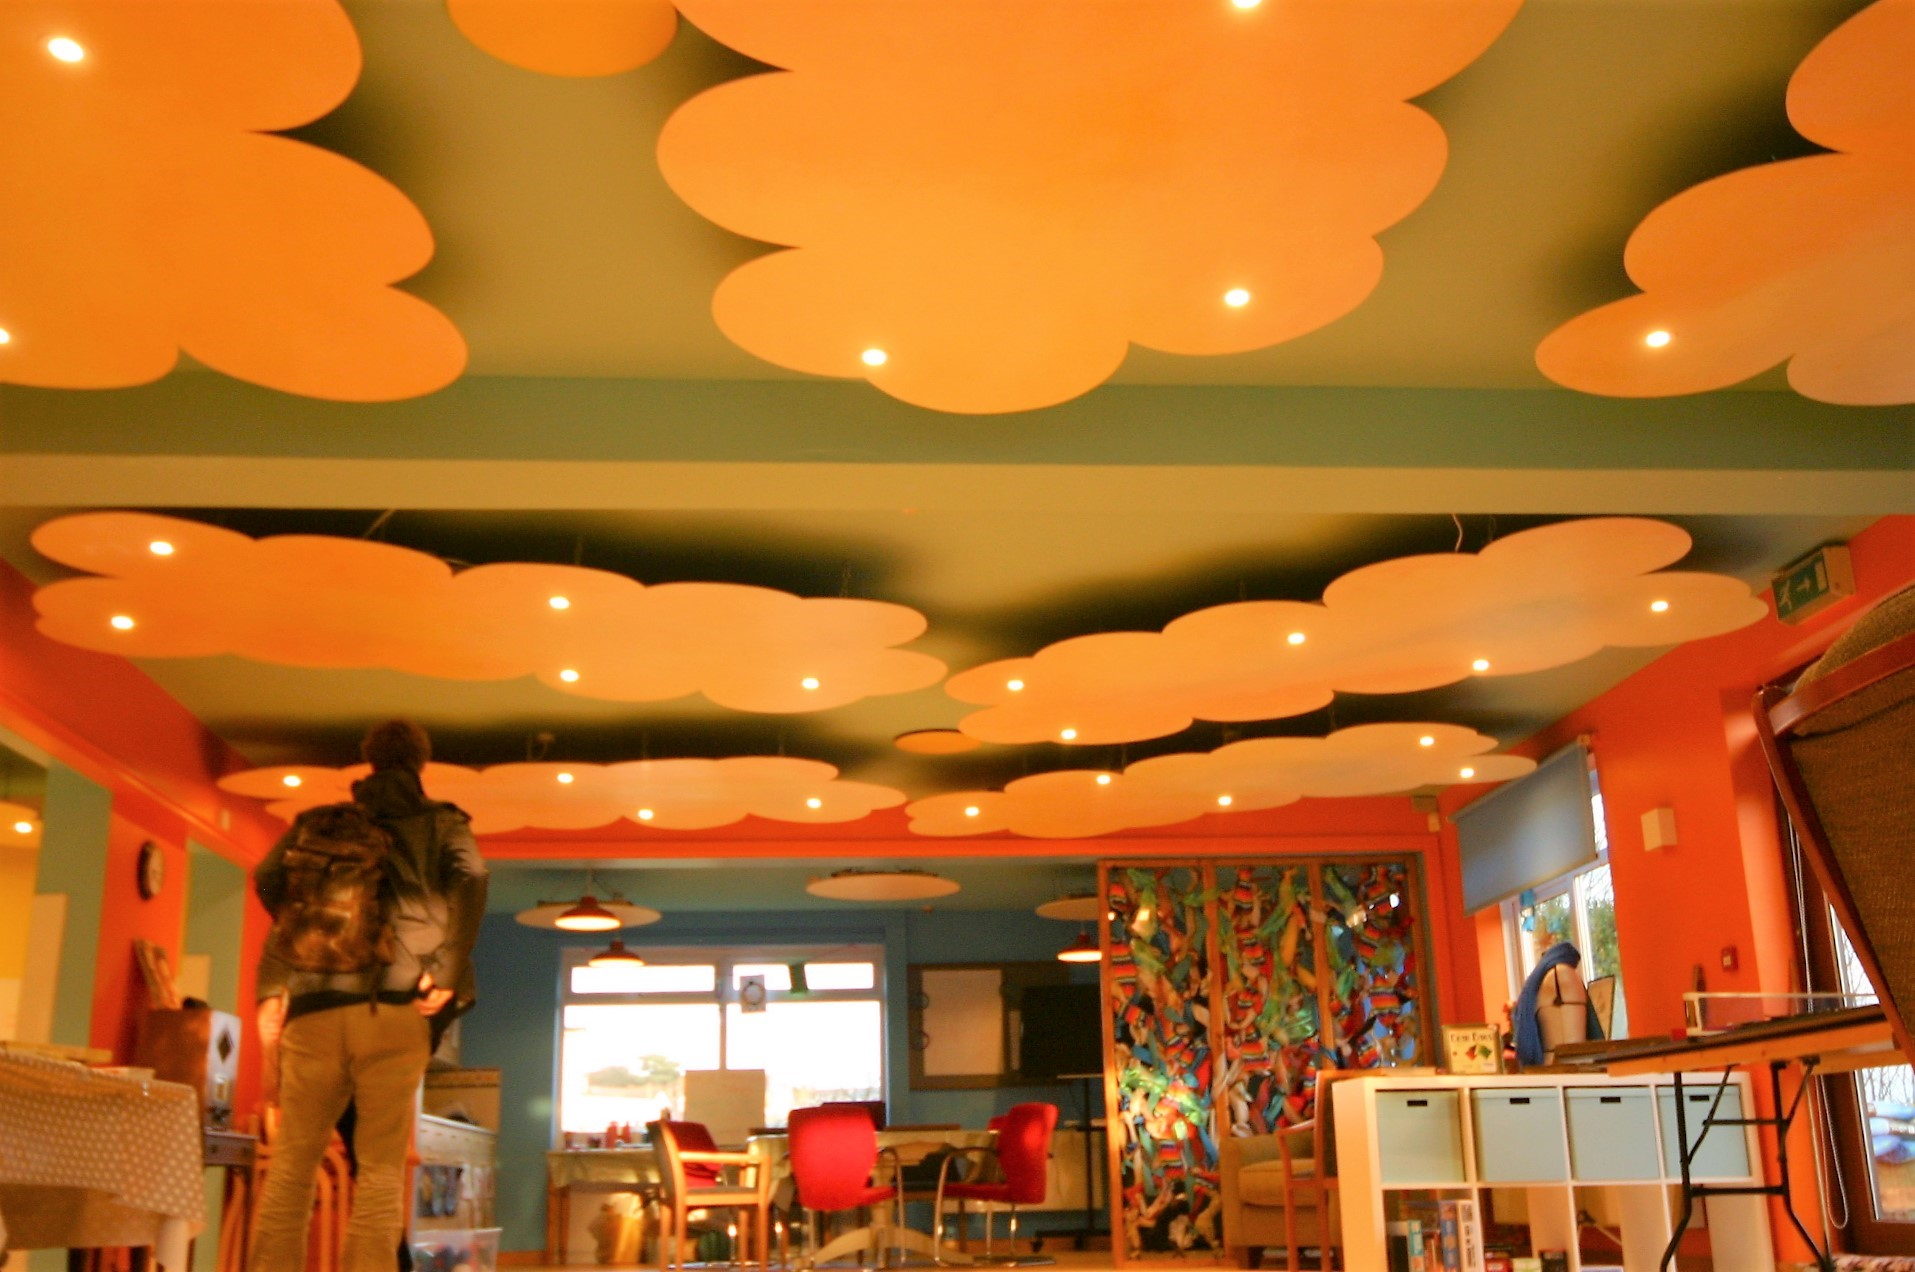 main space ceiling